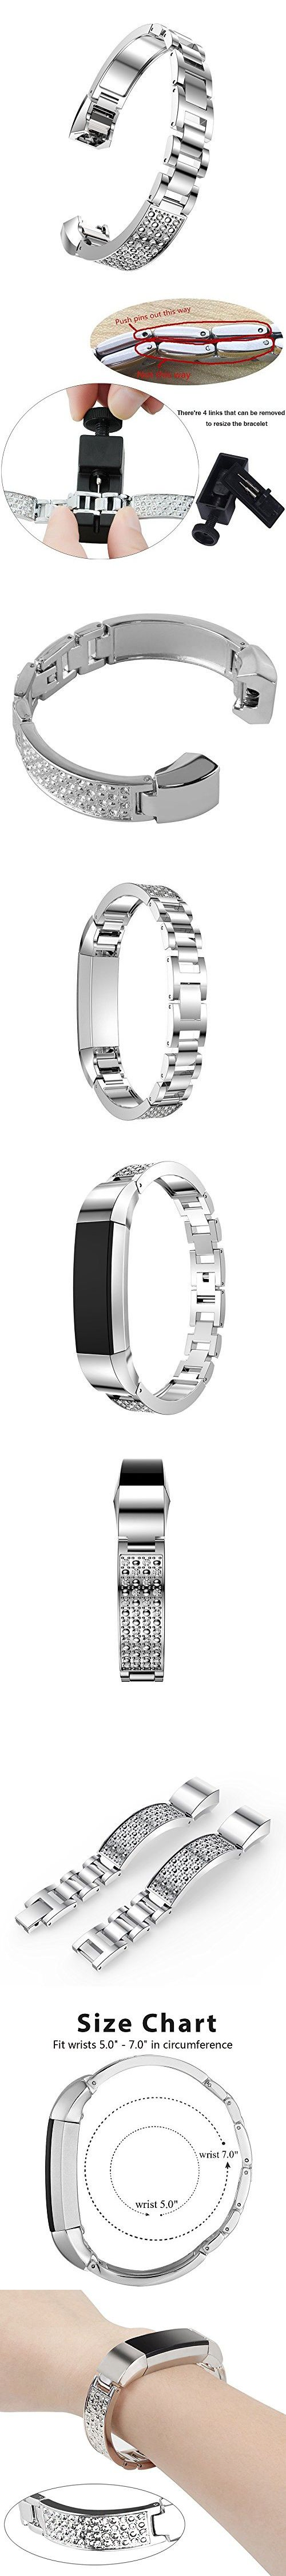 Metal Band For Fitbit Alta HR and Alta, Replacement Metal Watch Band for Fitbit Alta HR and Alta (4 Color: Rose Gold, Silver, Black, Gold)